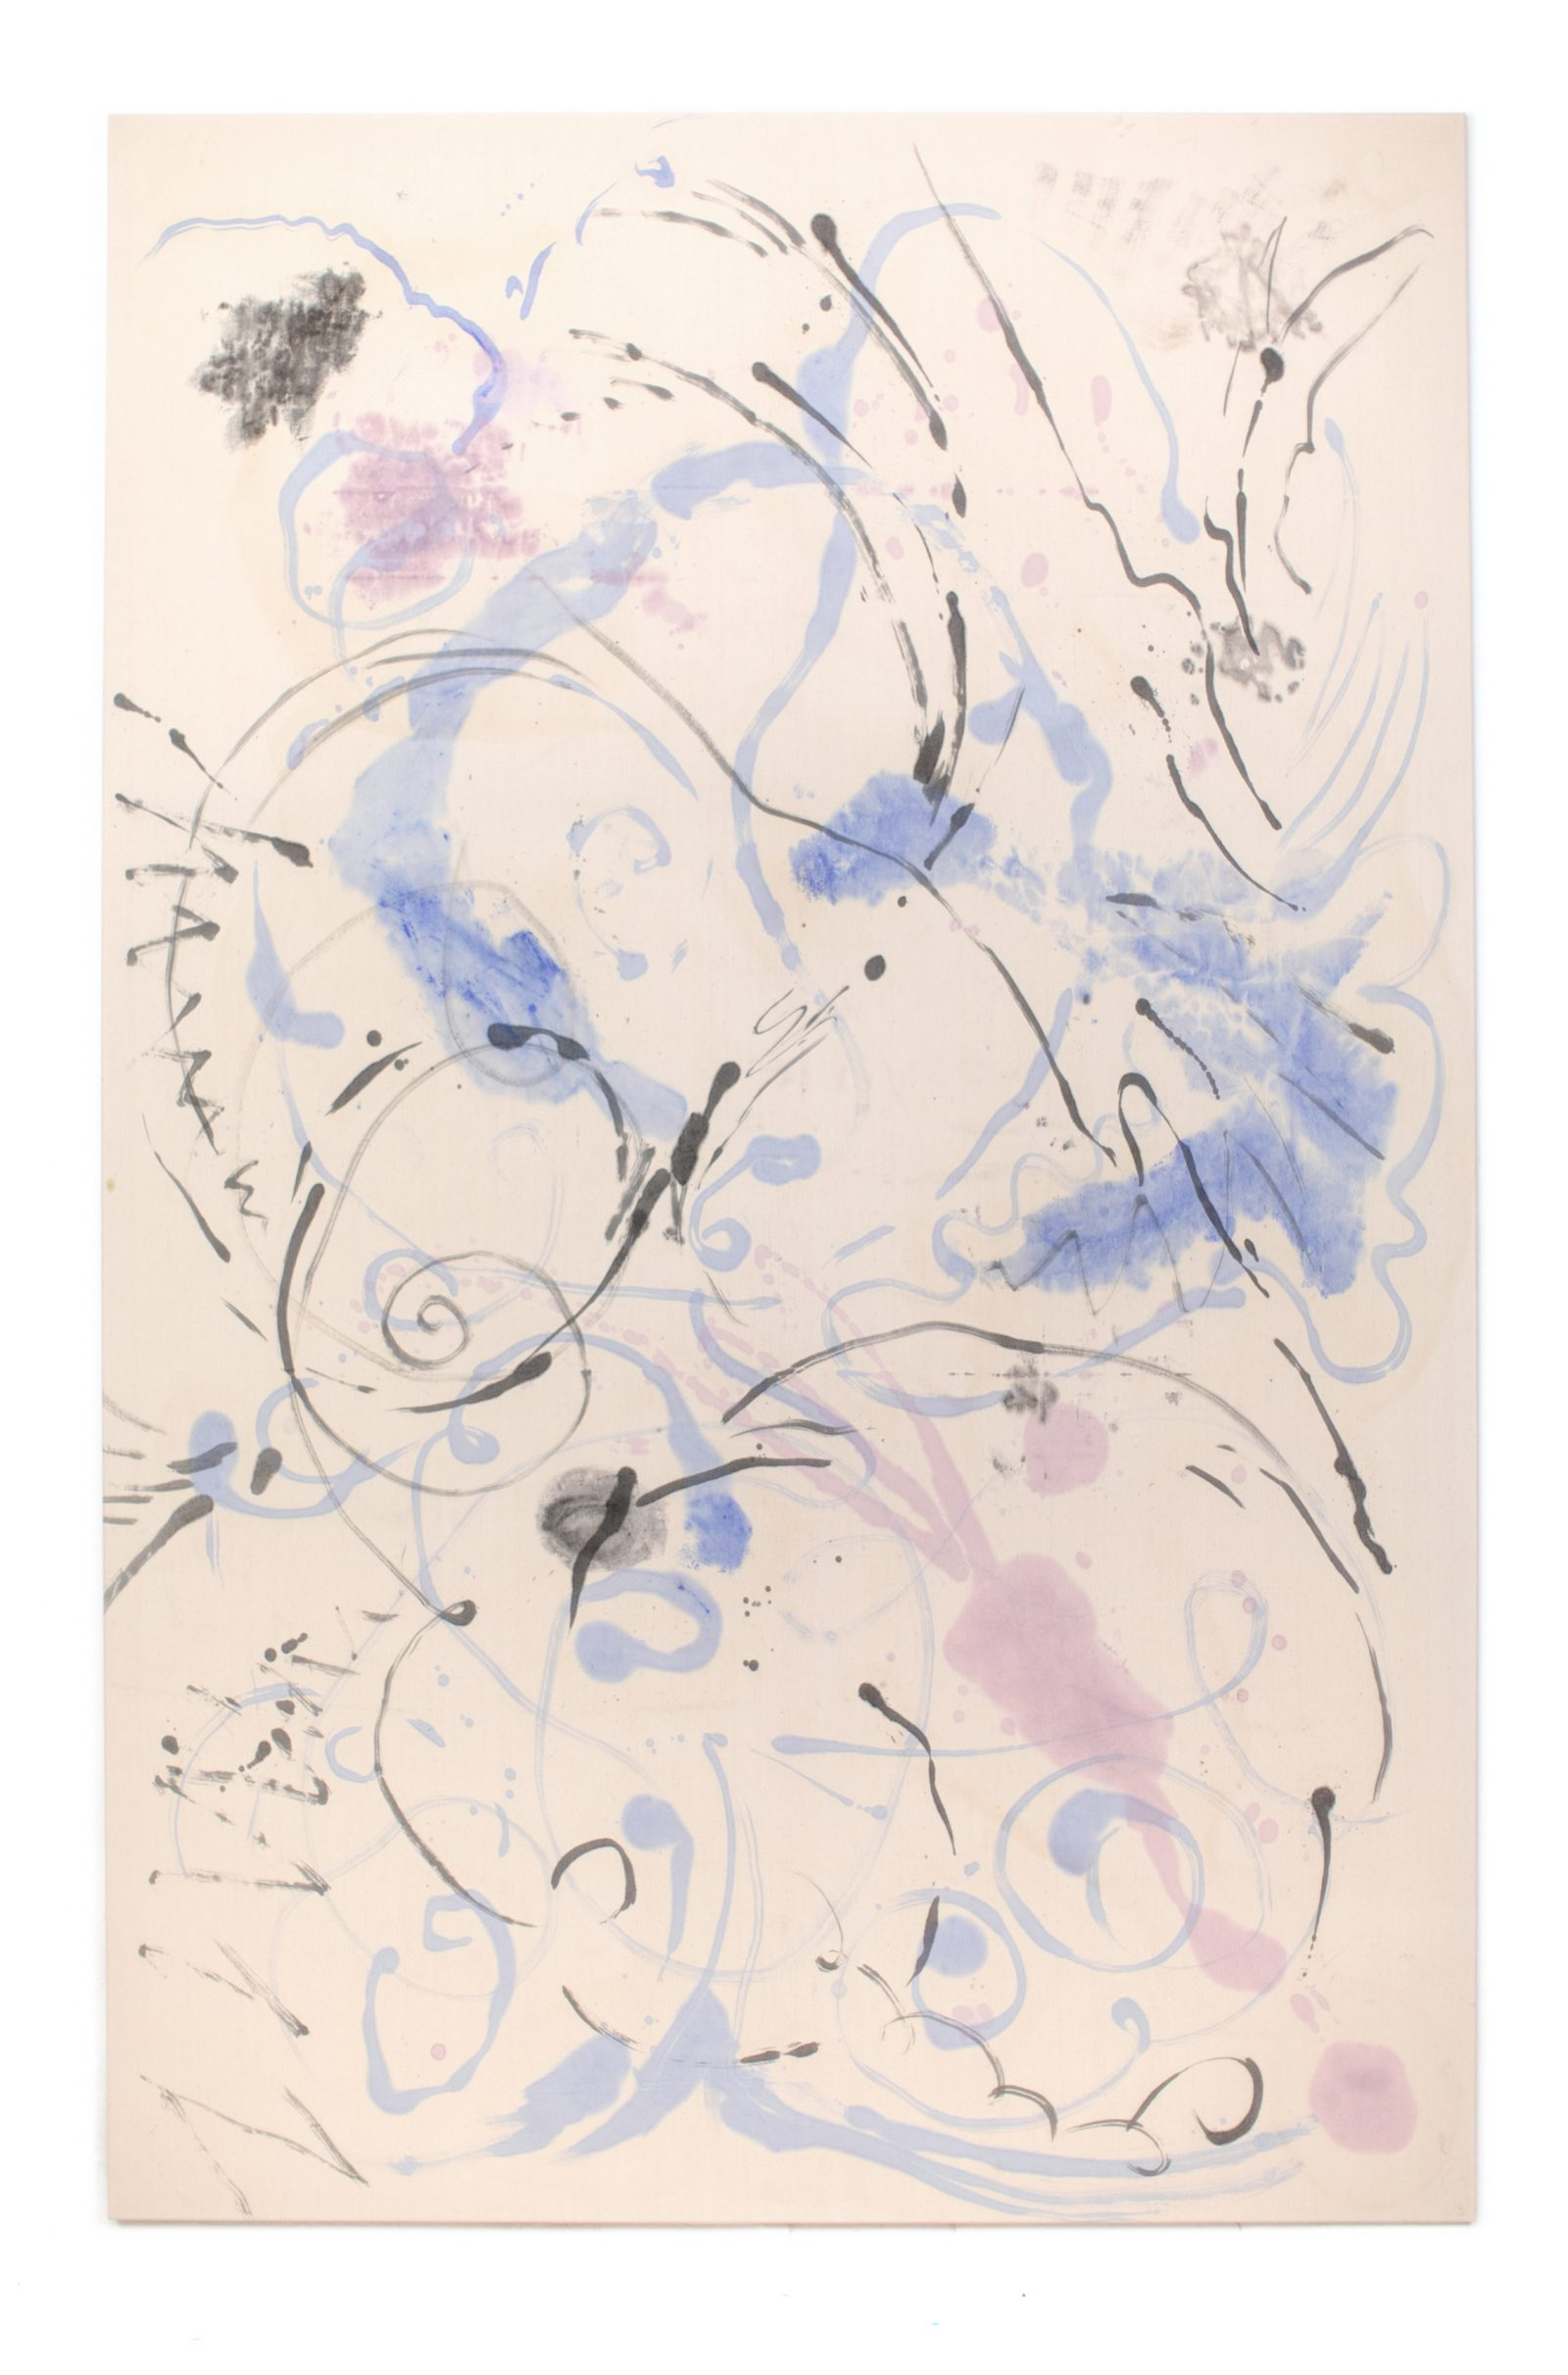 Gunna-Schmidt_A-Joyous-Flow-of-Endless-Becoming-Water1_-240-x-155-cm_-oil-on-cotton-duck_img-Matthias-Kindler_bA35R4796-e1482698195813